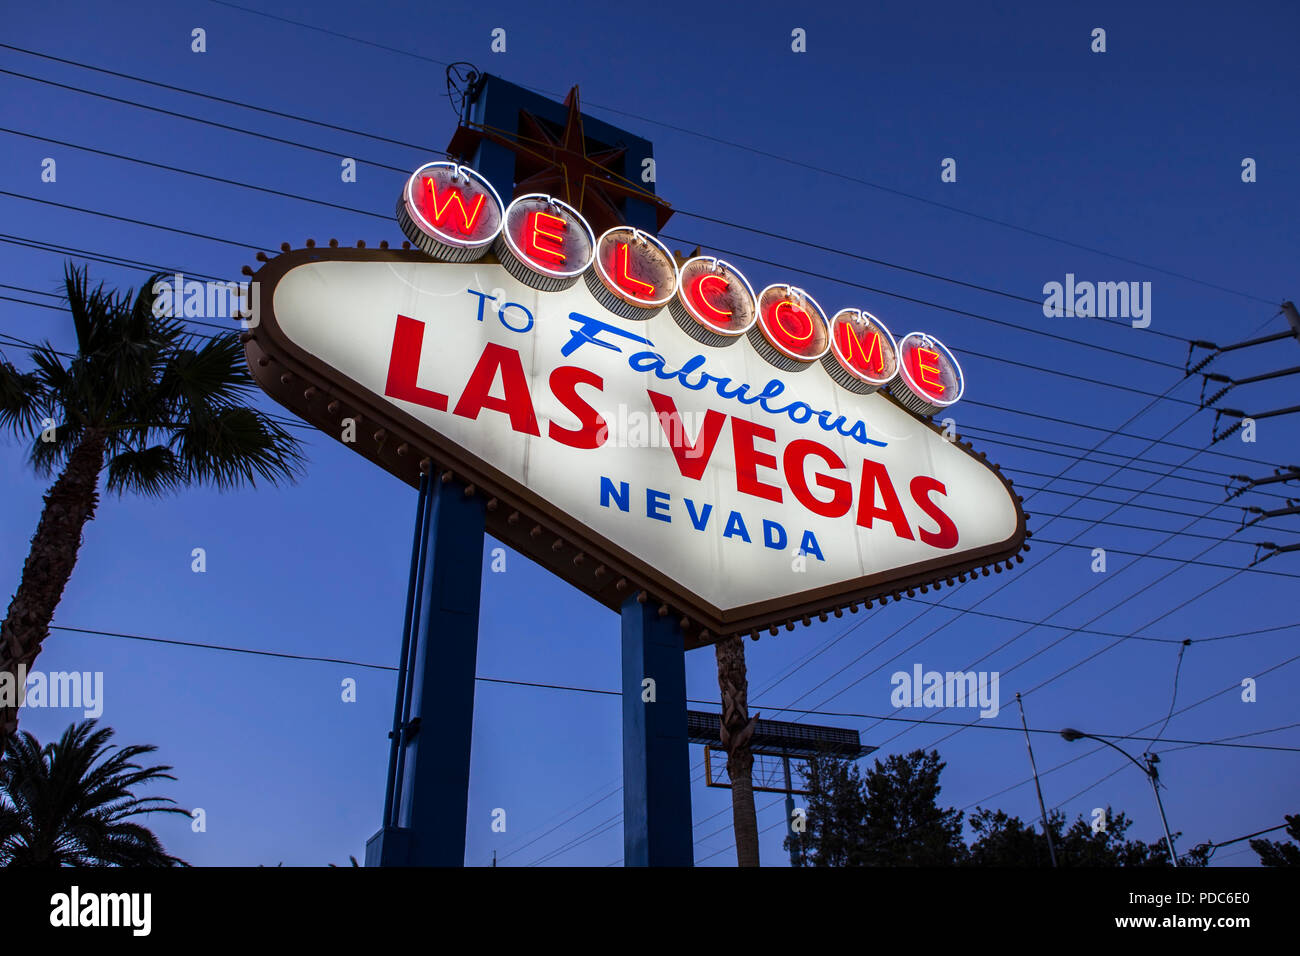 Welcome to Fabulous Las Vegas sign, palm trees and overhead wire grid at night. - Stock Image